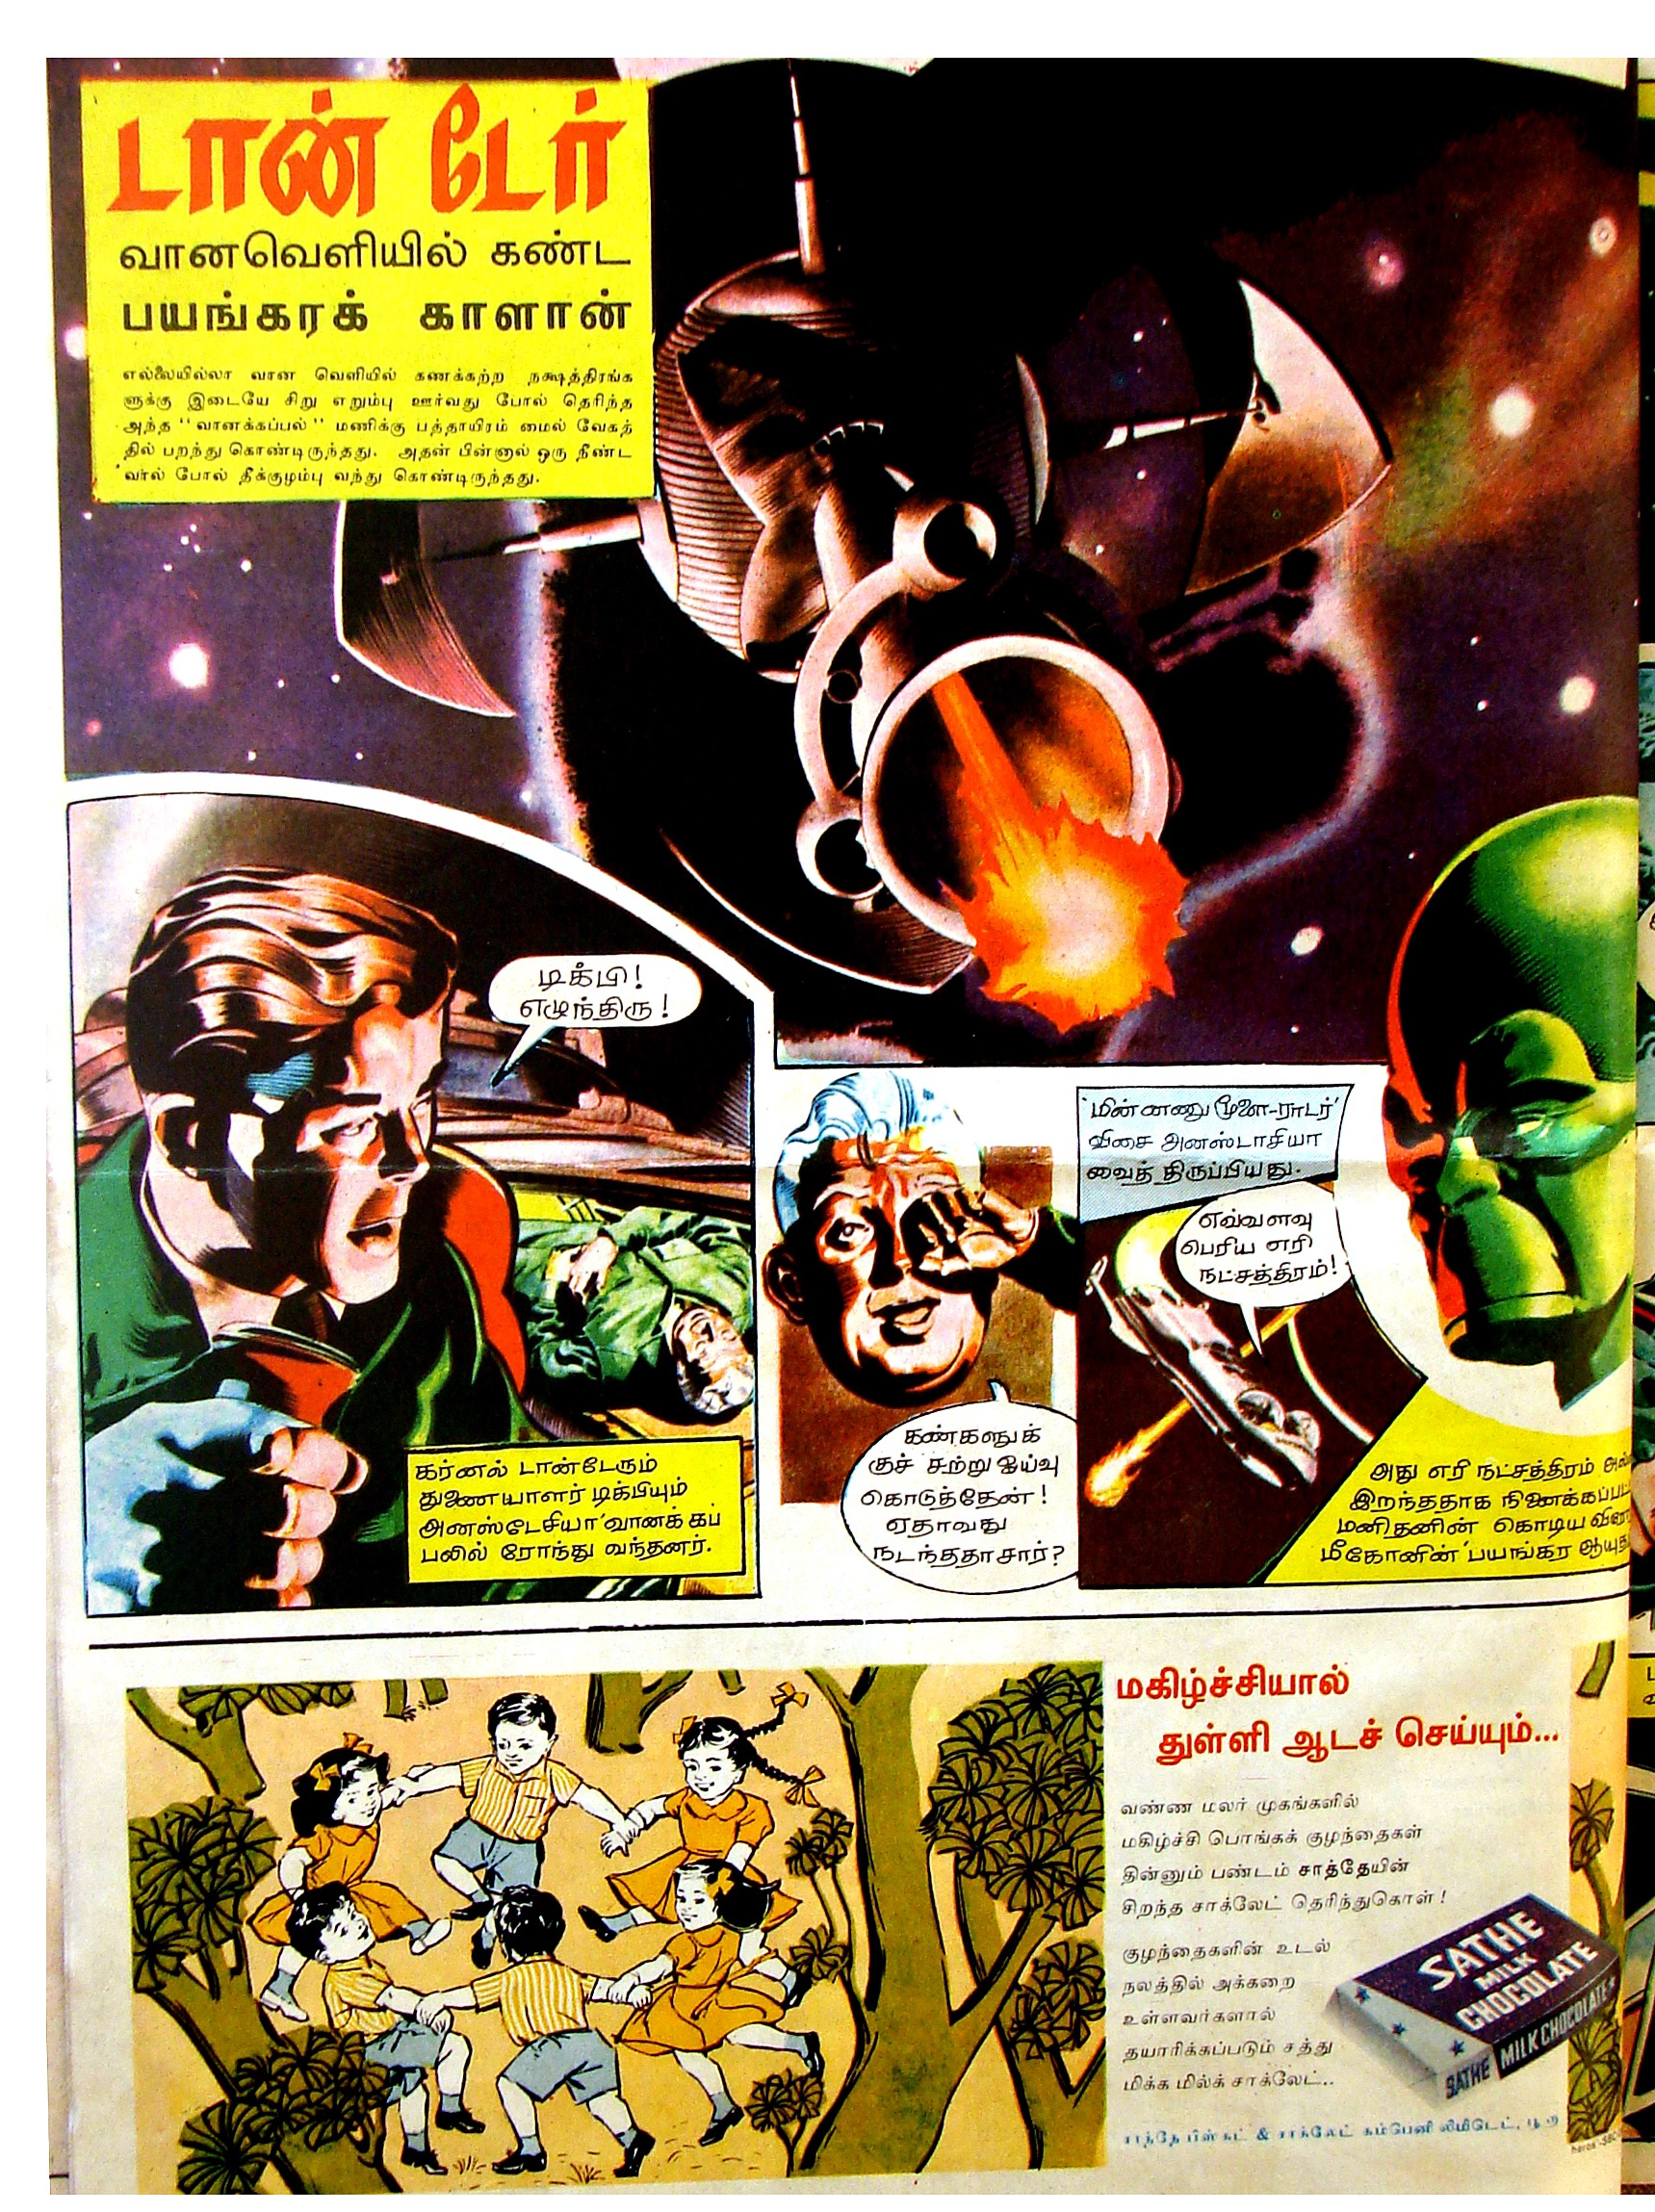 Dan Dare's first appearance in India, in Falcon Issue One.